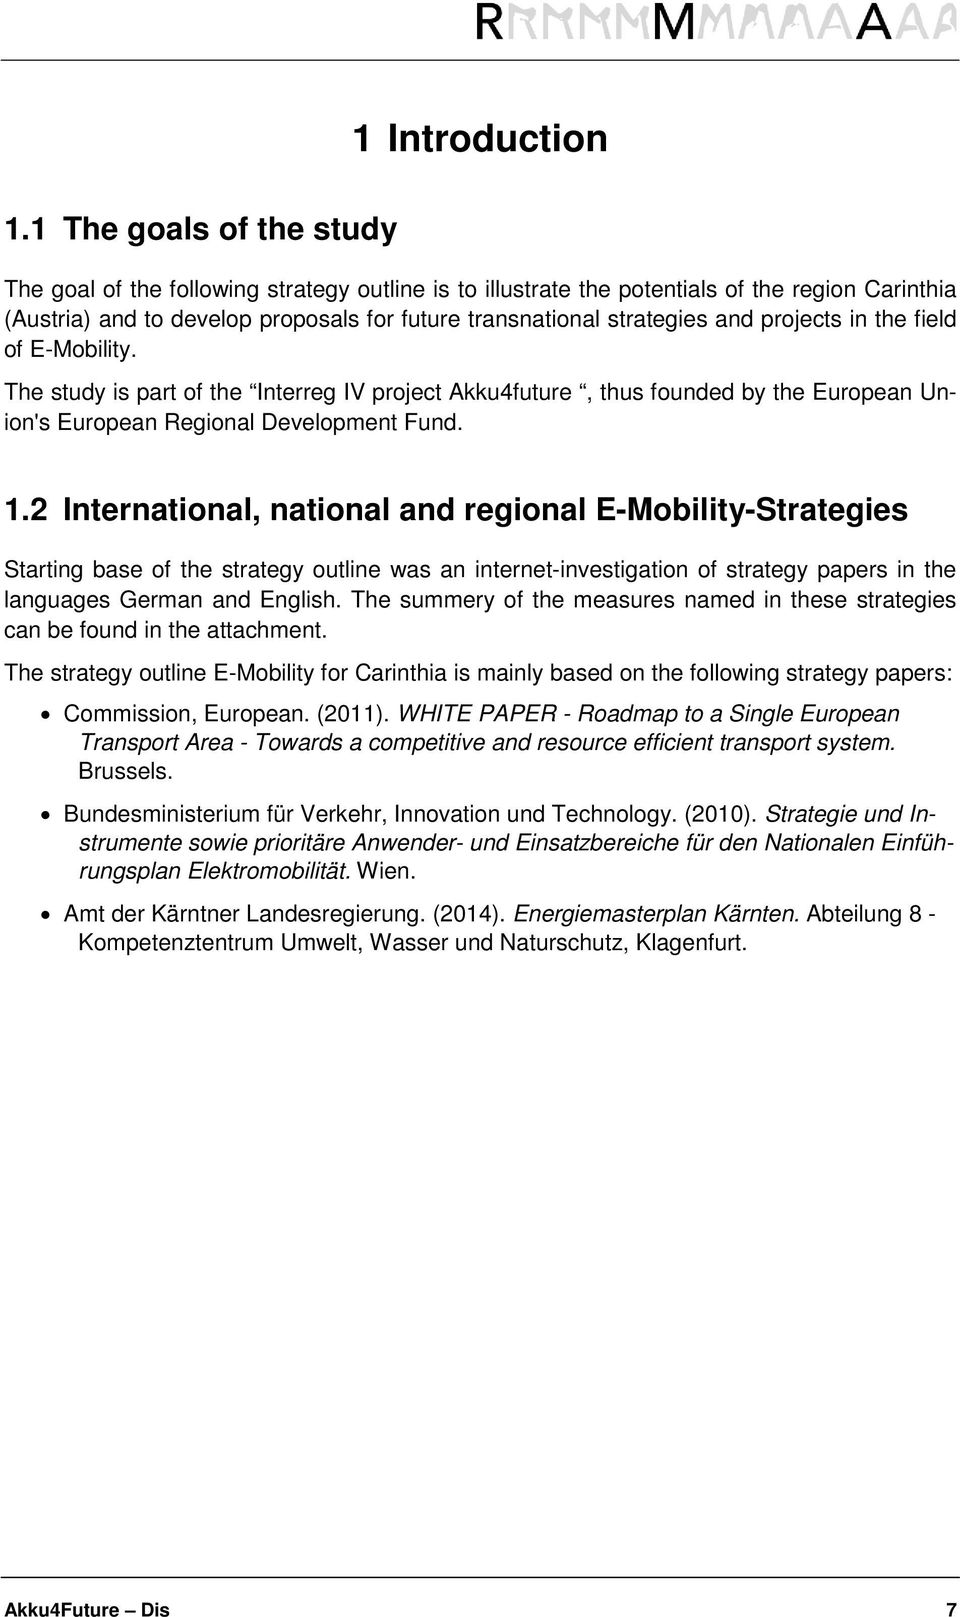 2 International, national and regional E-Mobility-Strategies Starting base of the strategy outline was an internet-investigation of strategy papers in the languages German and English.